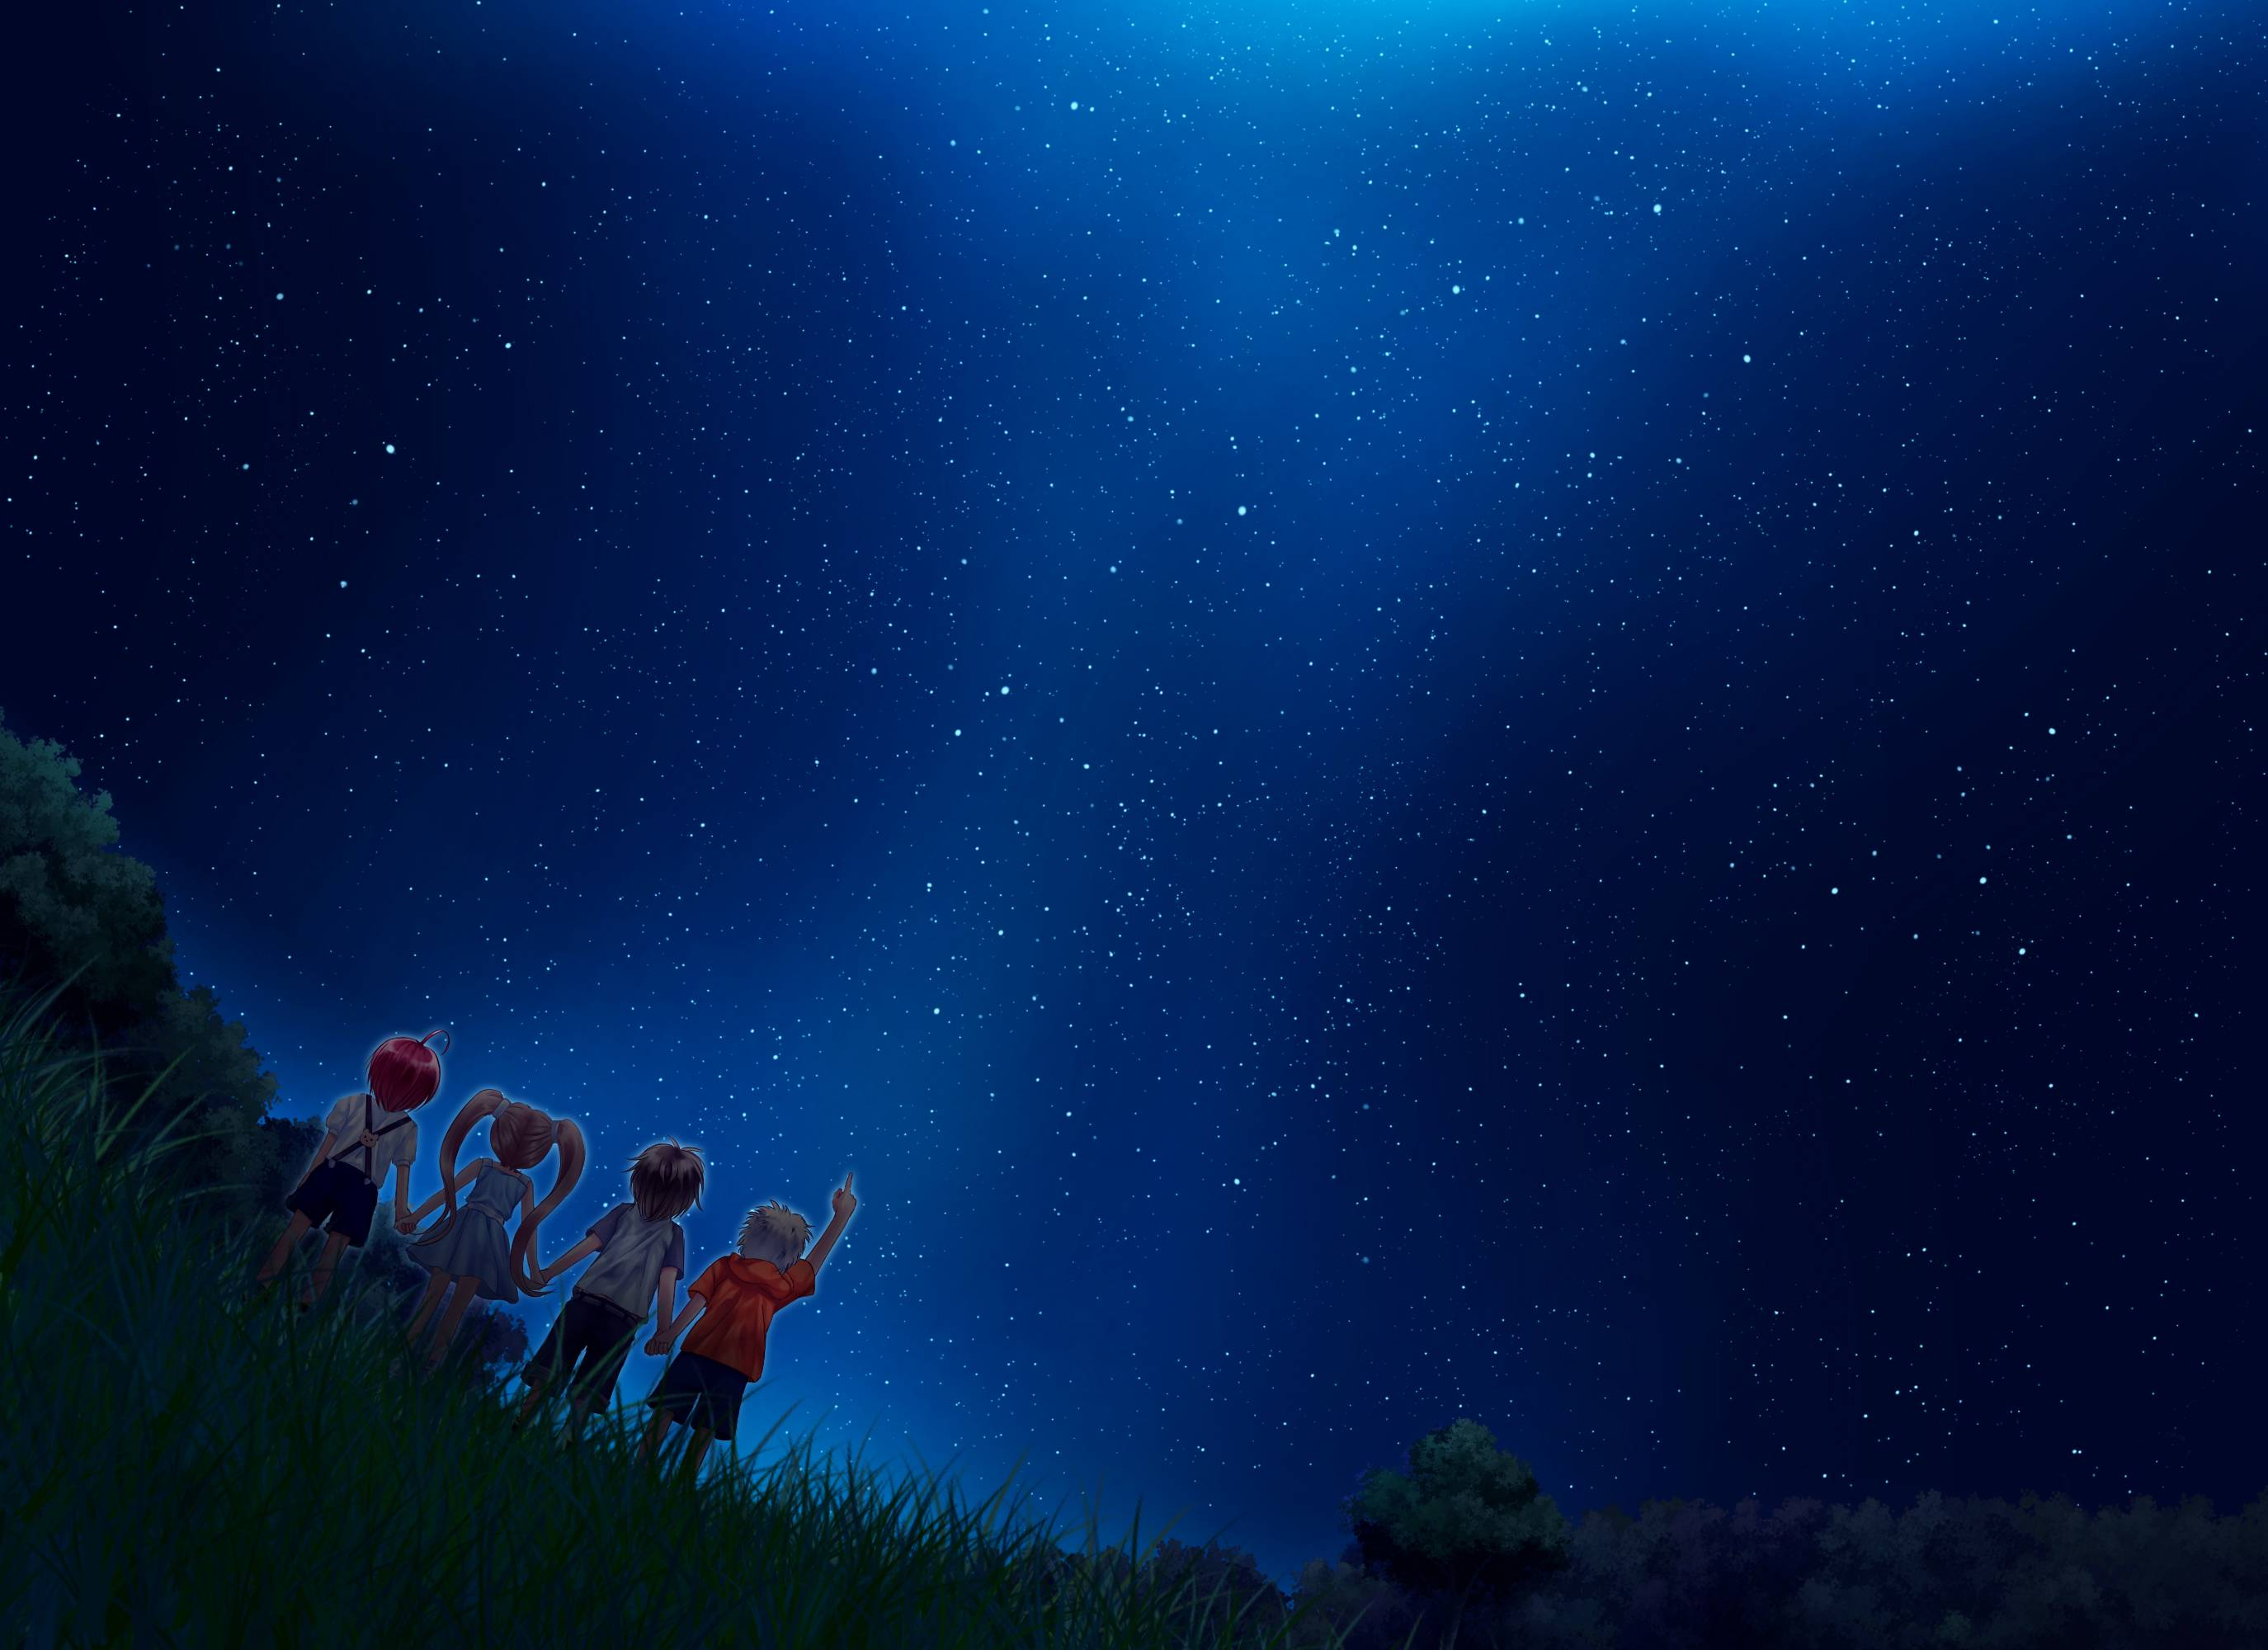 Anime sky wallpapers wallpaper cave - Star night wallpaper ...